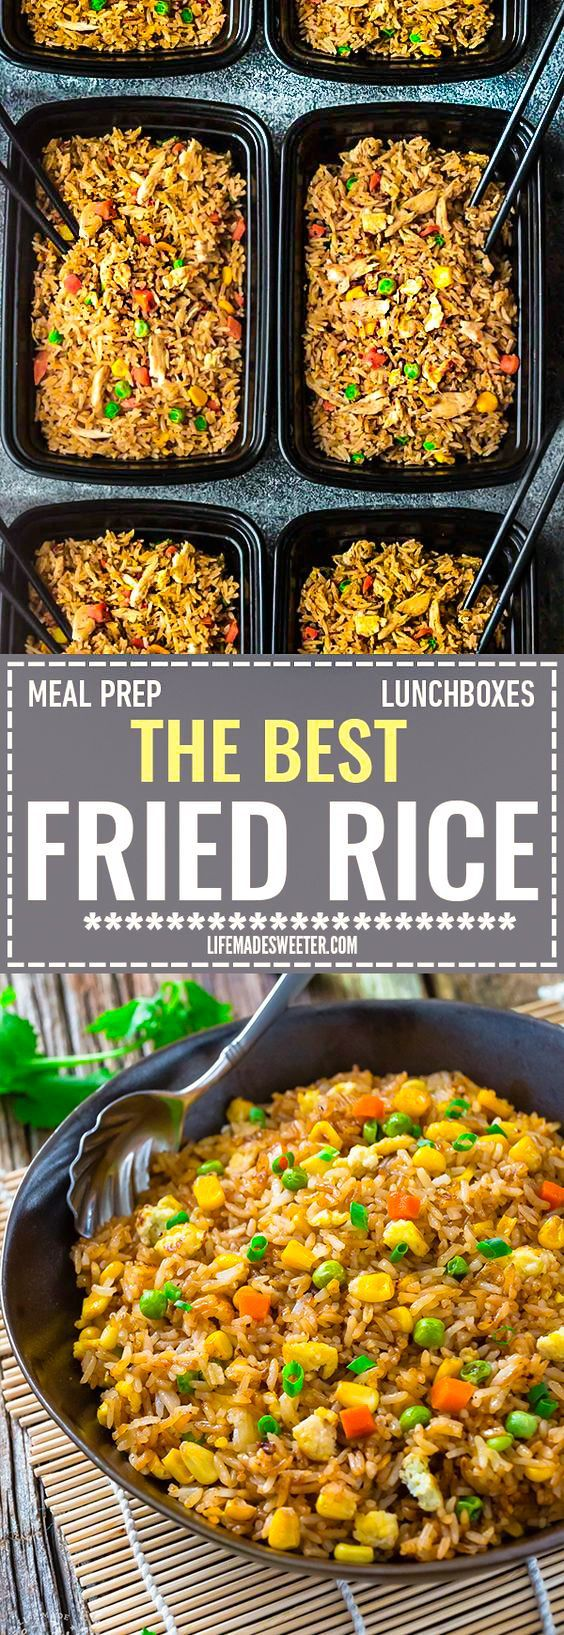 Absolutely the BEST Chinese Fried Rice - the perfect easy weeknight dish. With the most authentic flavors! My father was the head chef at a top Hong Kong Chinese restaurant and this was his specialty!